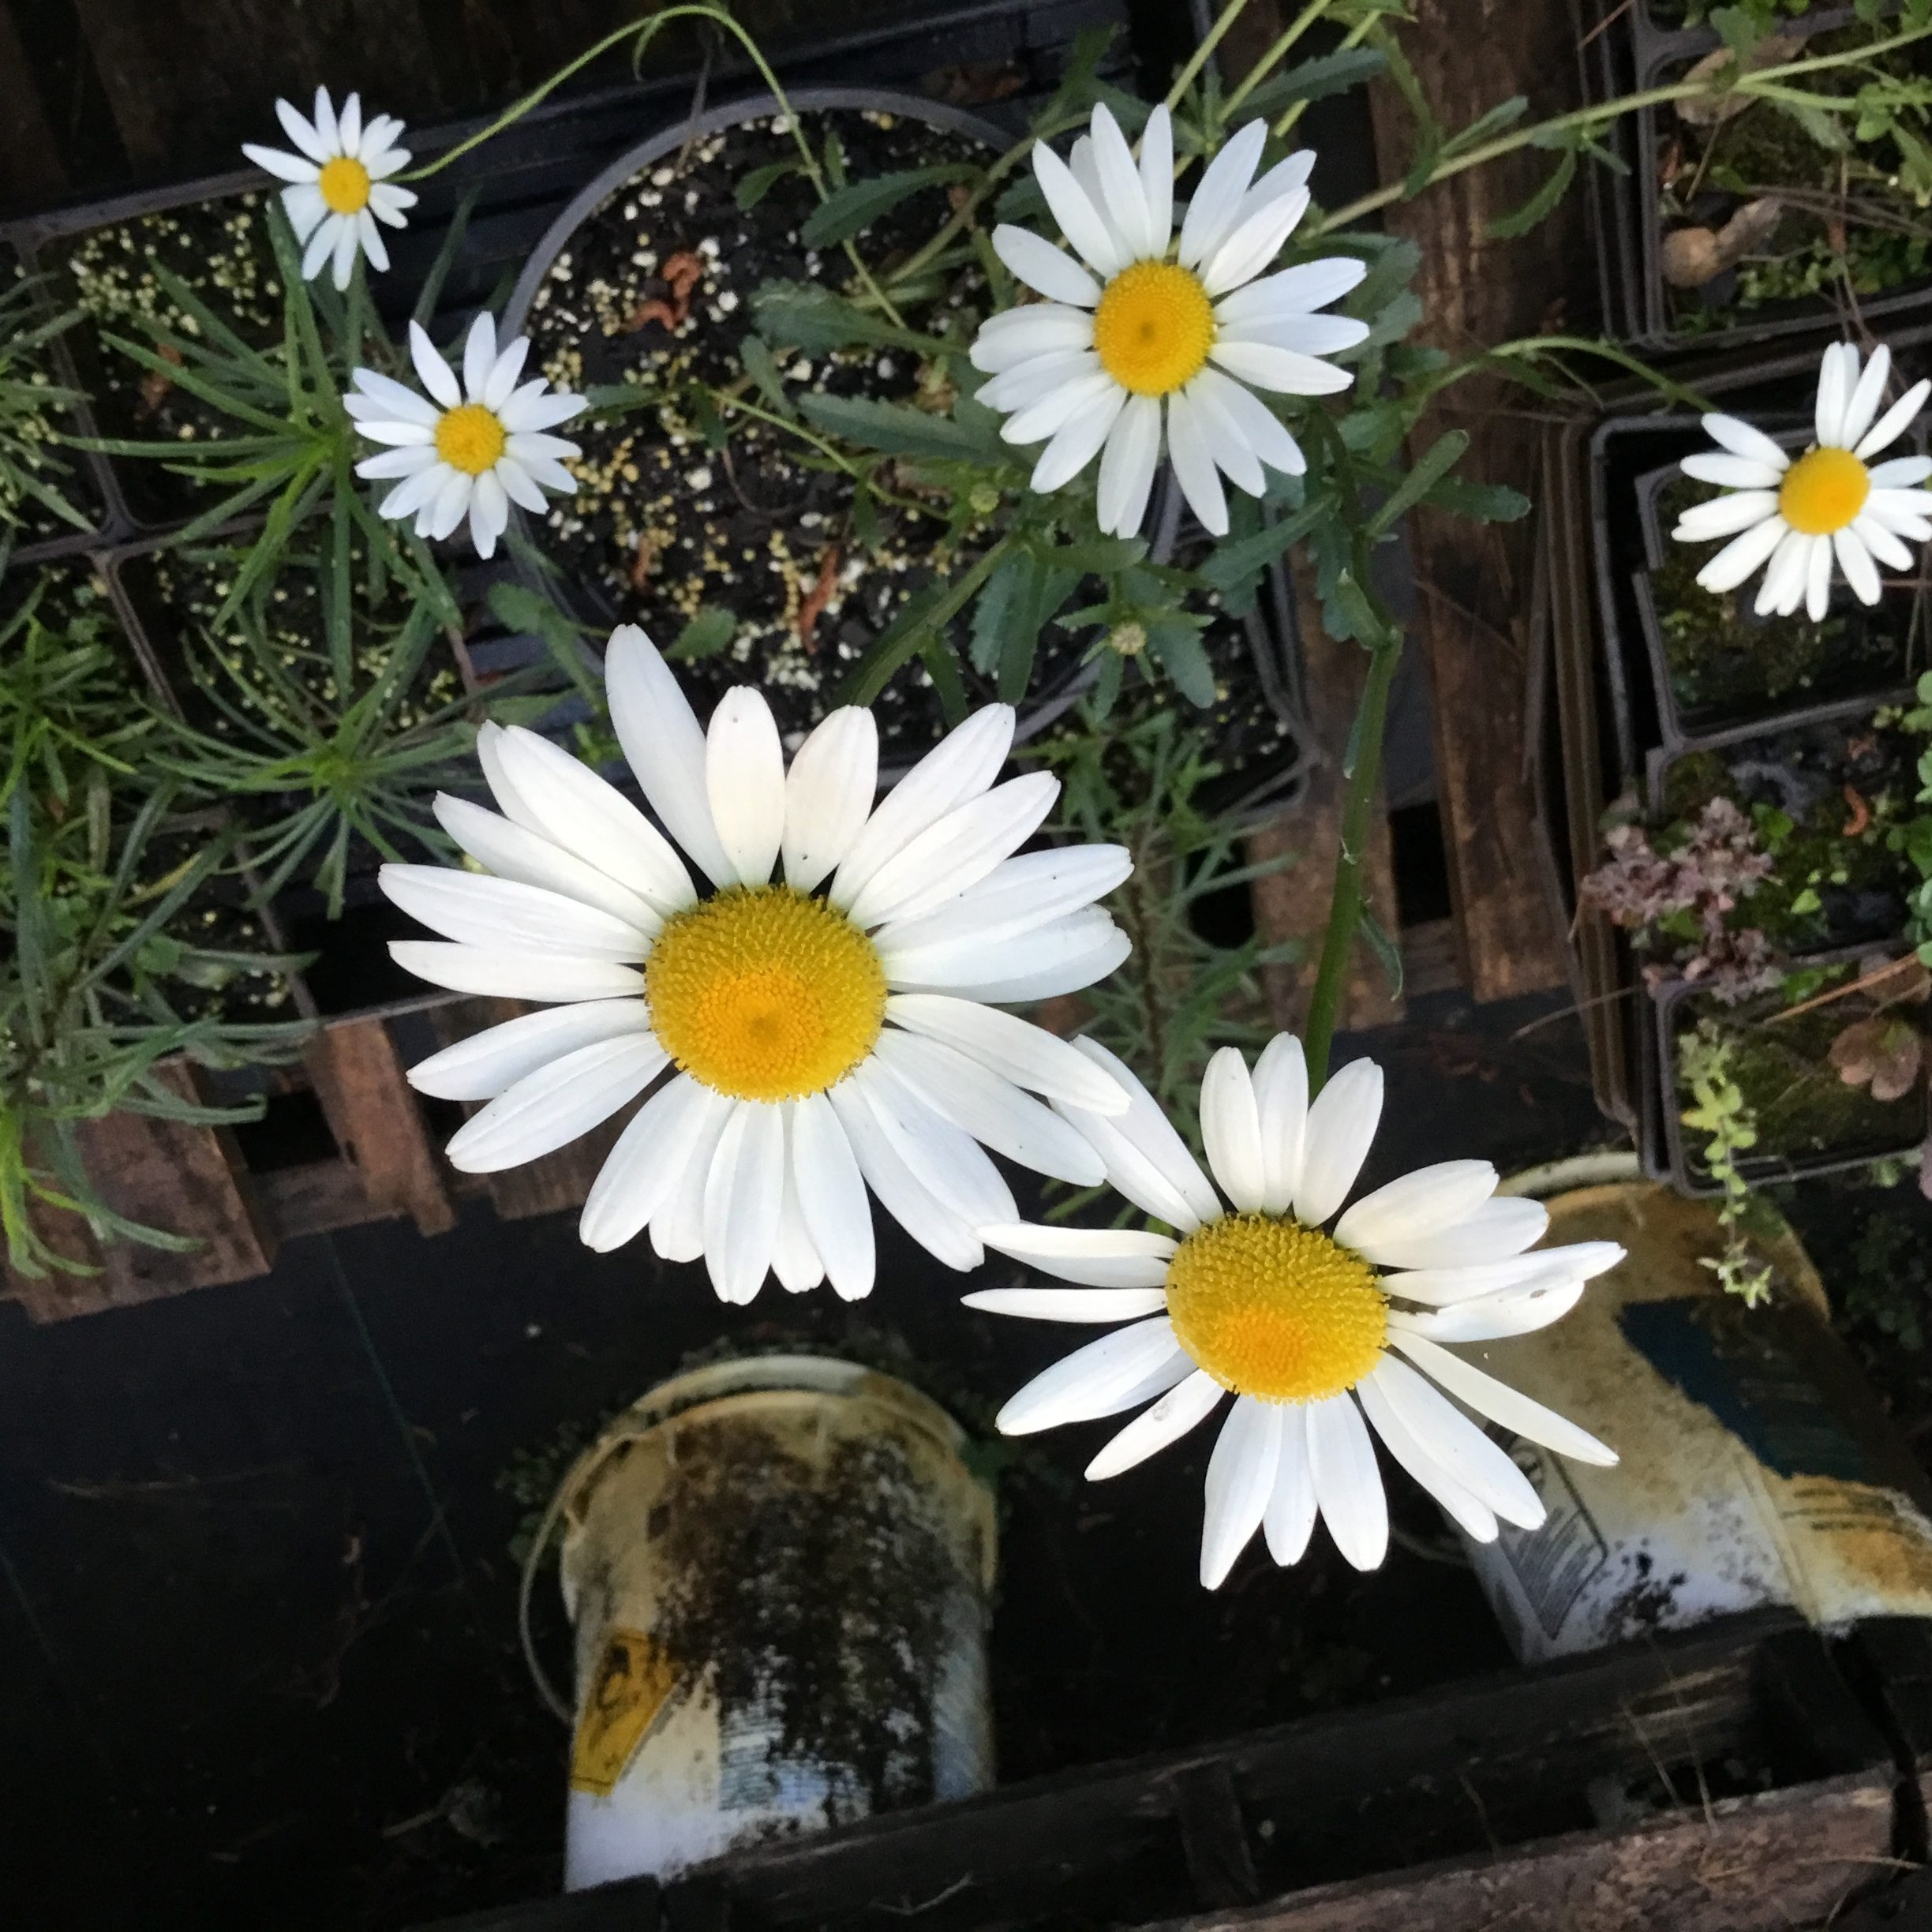 Image Related To Leucanthemum vulgare (Oxeye Daisy)